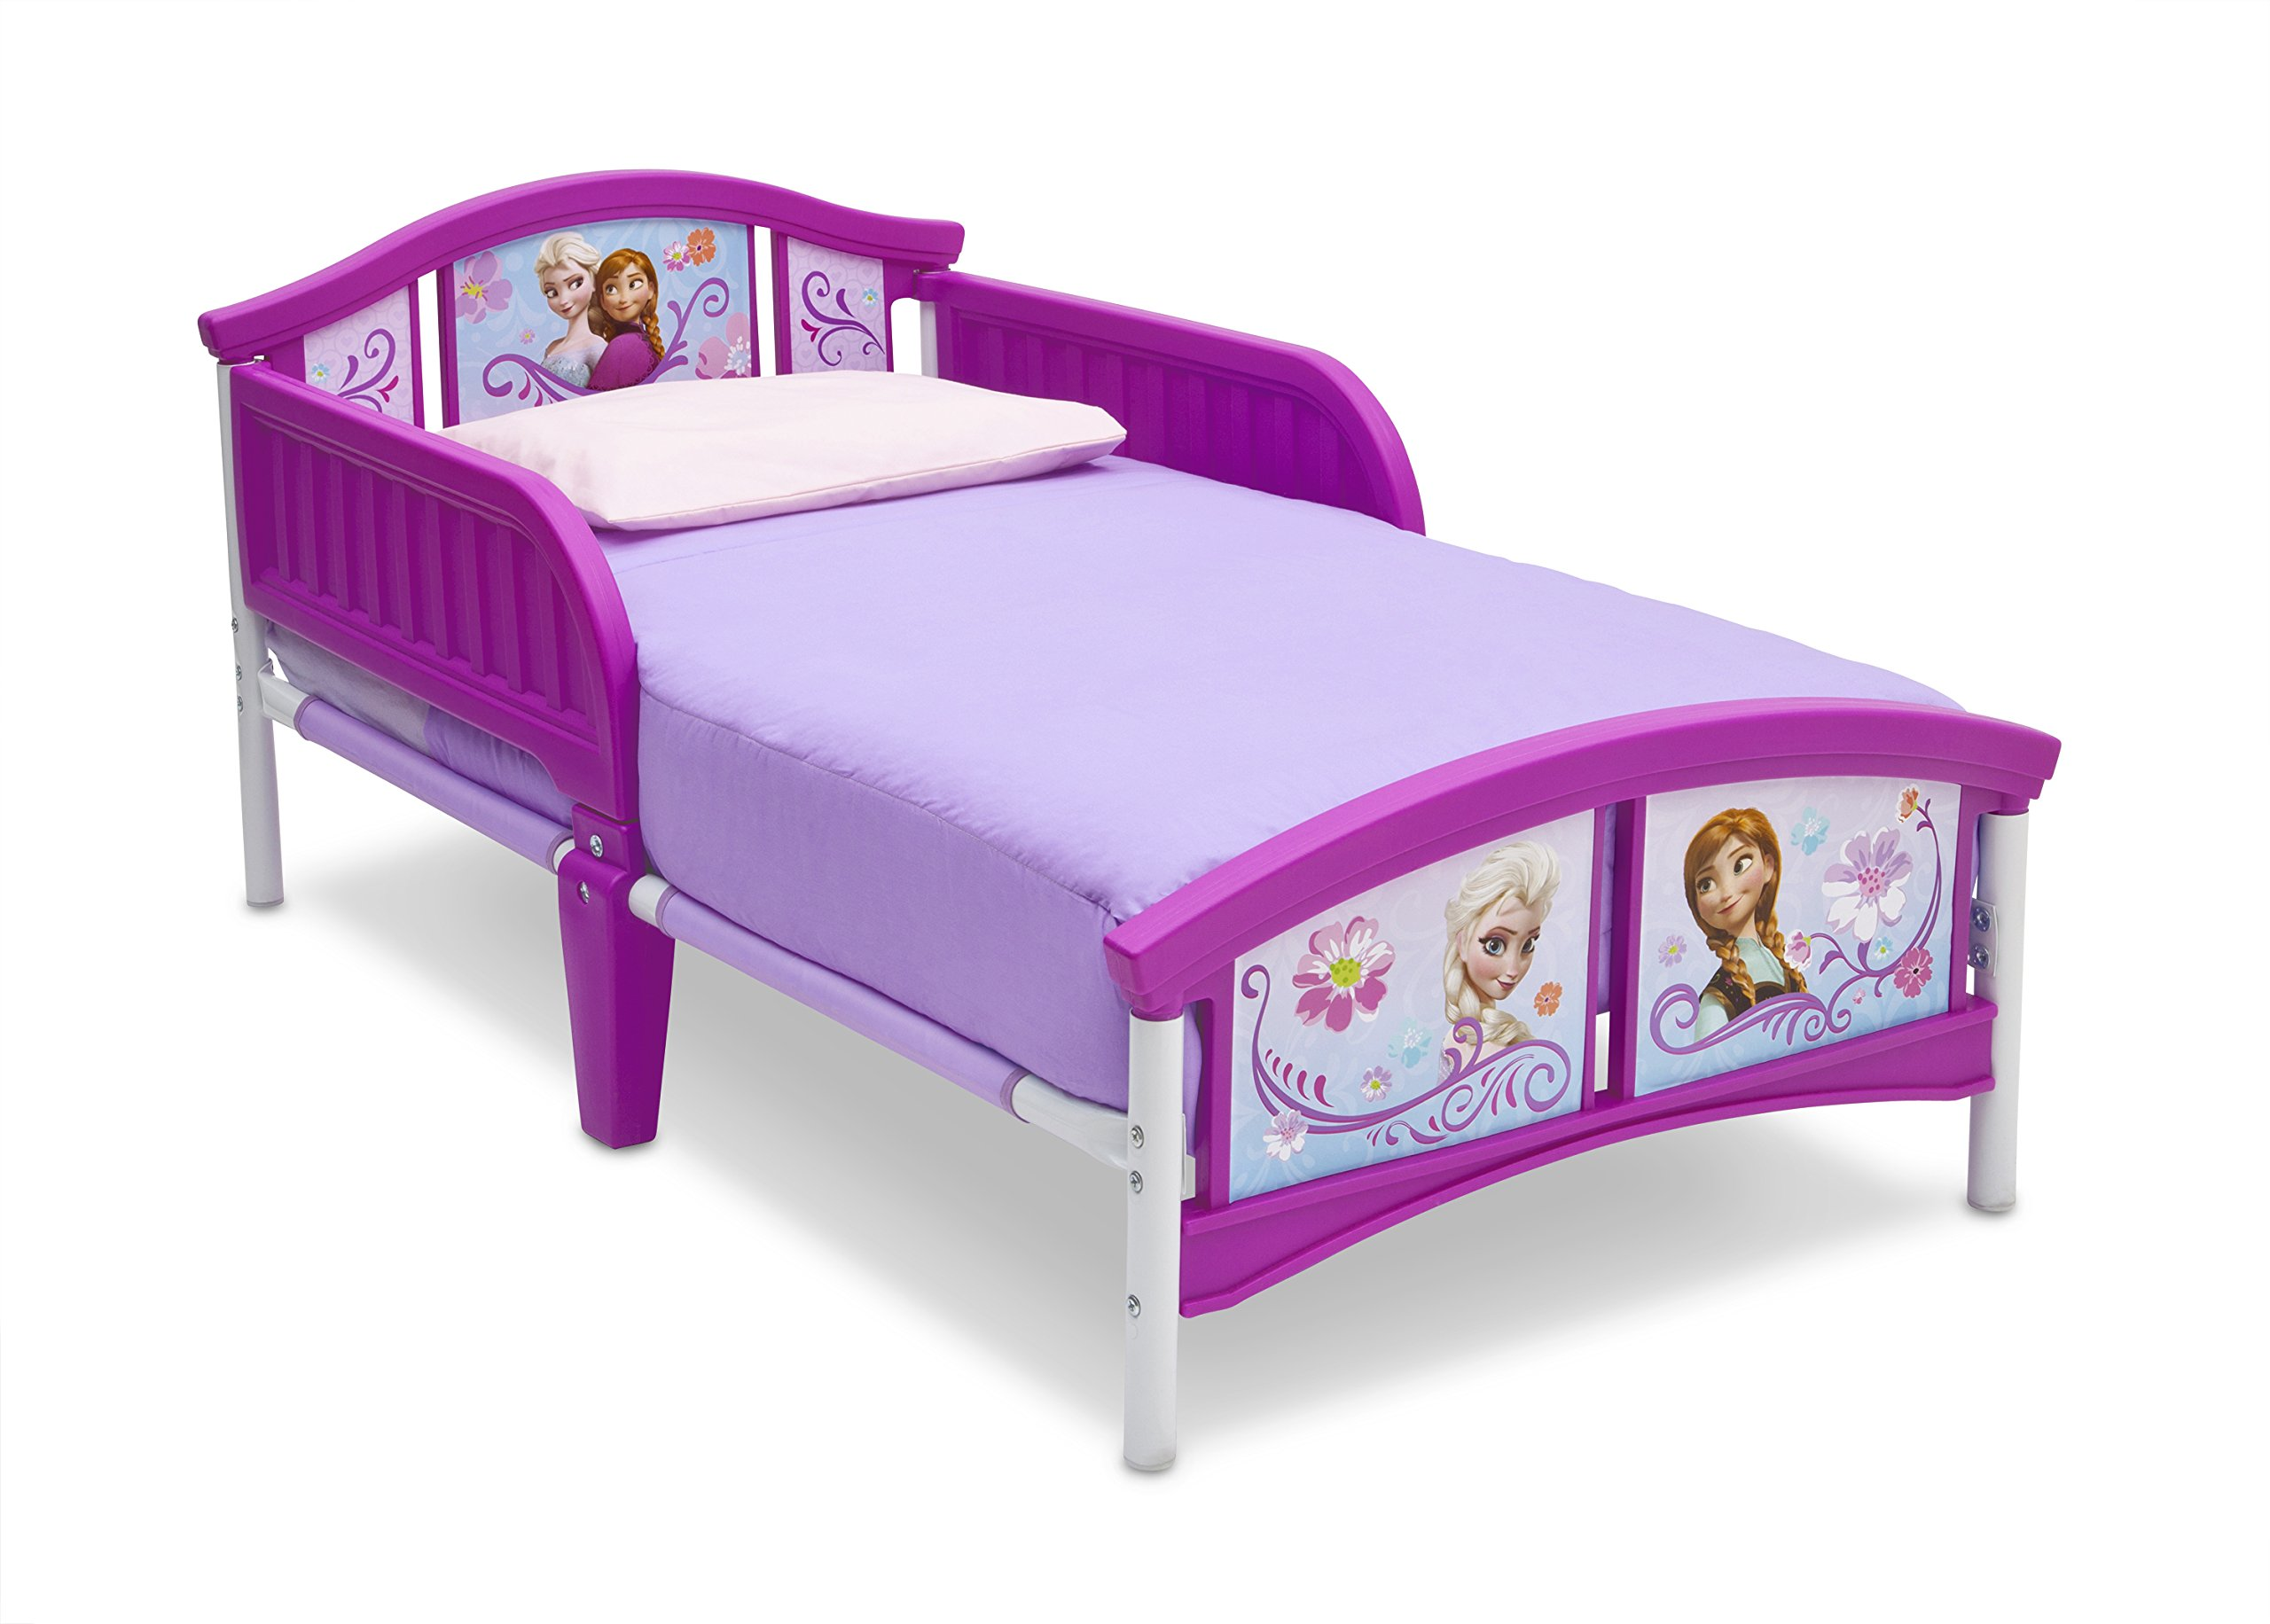 Disney Frozen Canopy Kids Toddler Bed Girls Princess Anna